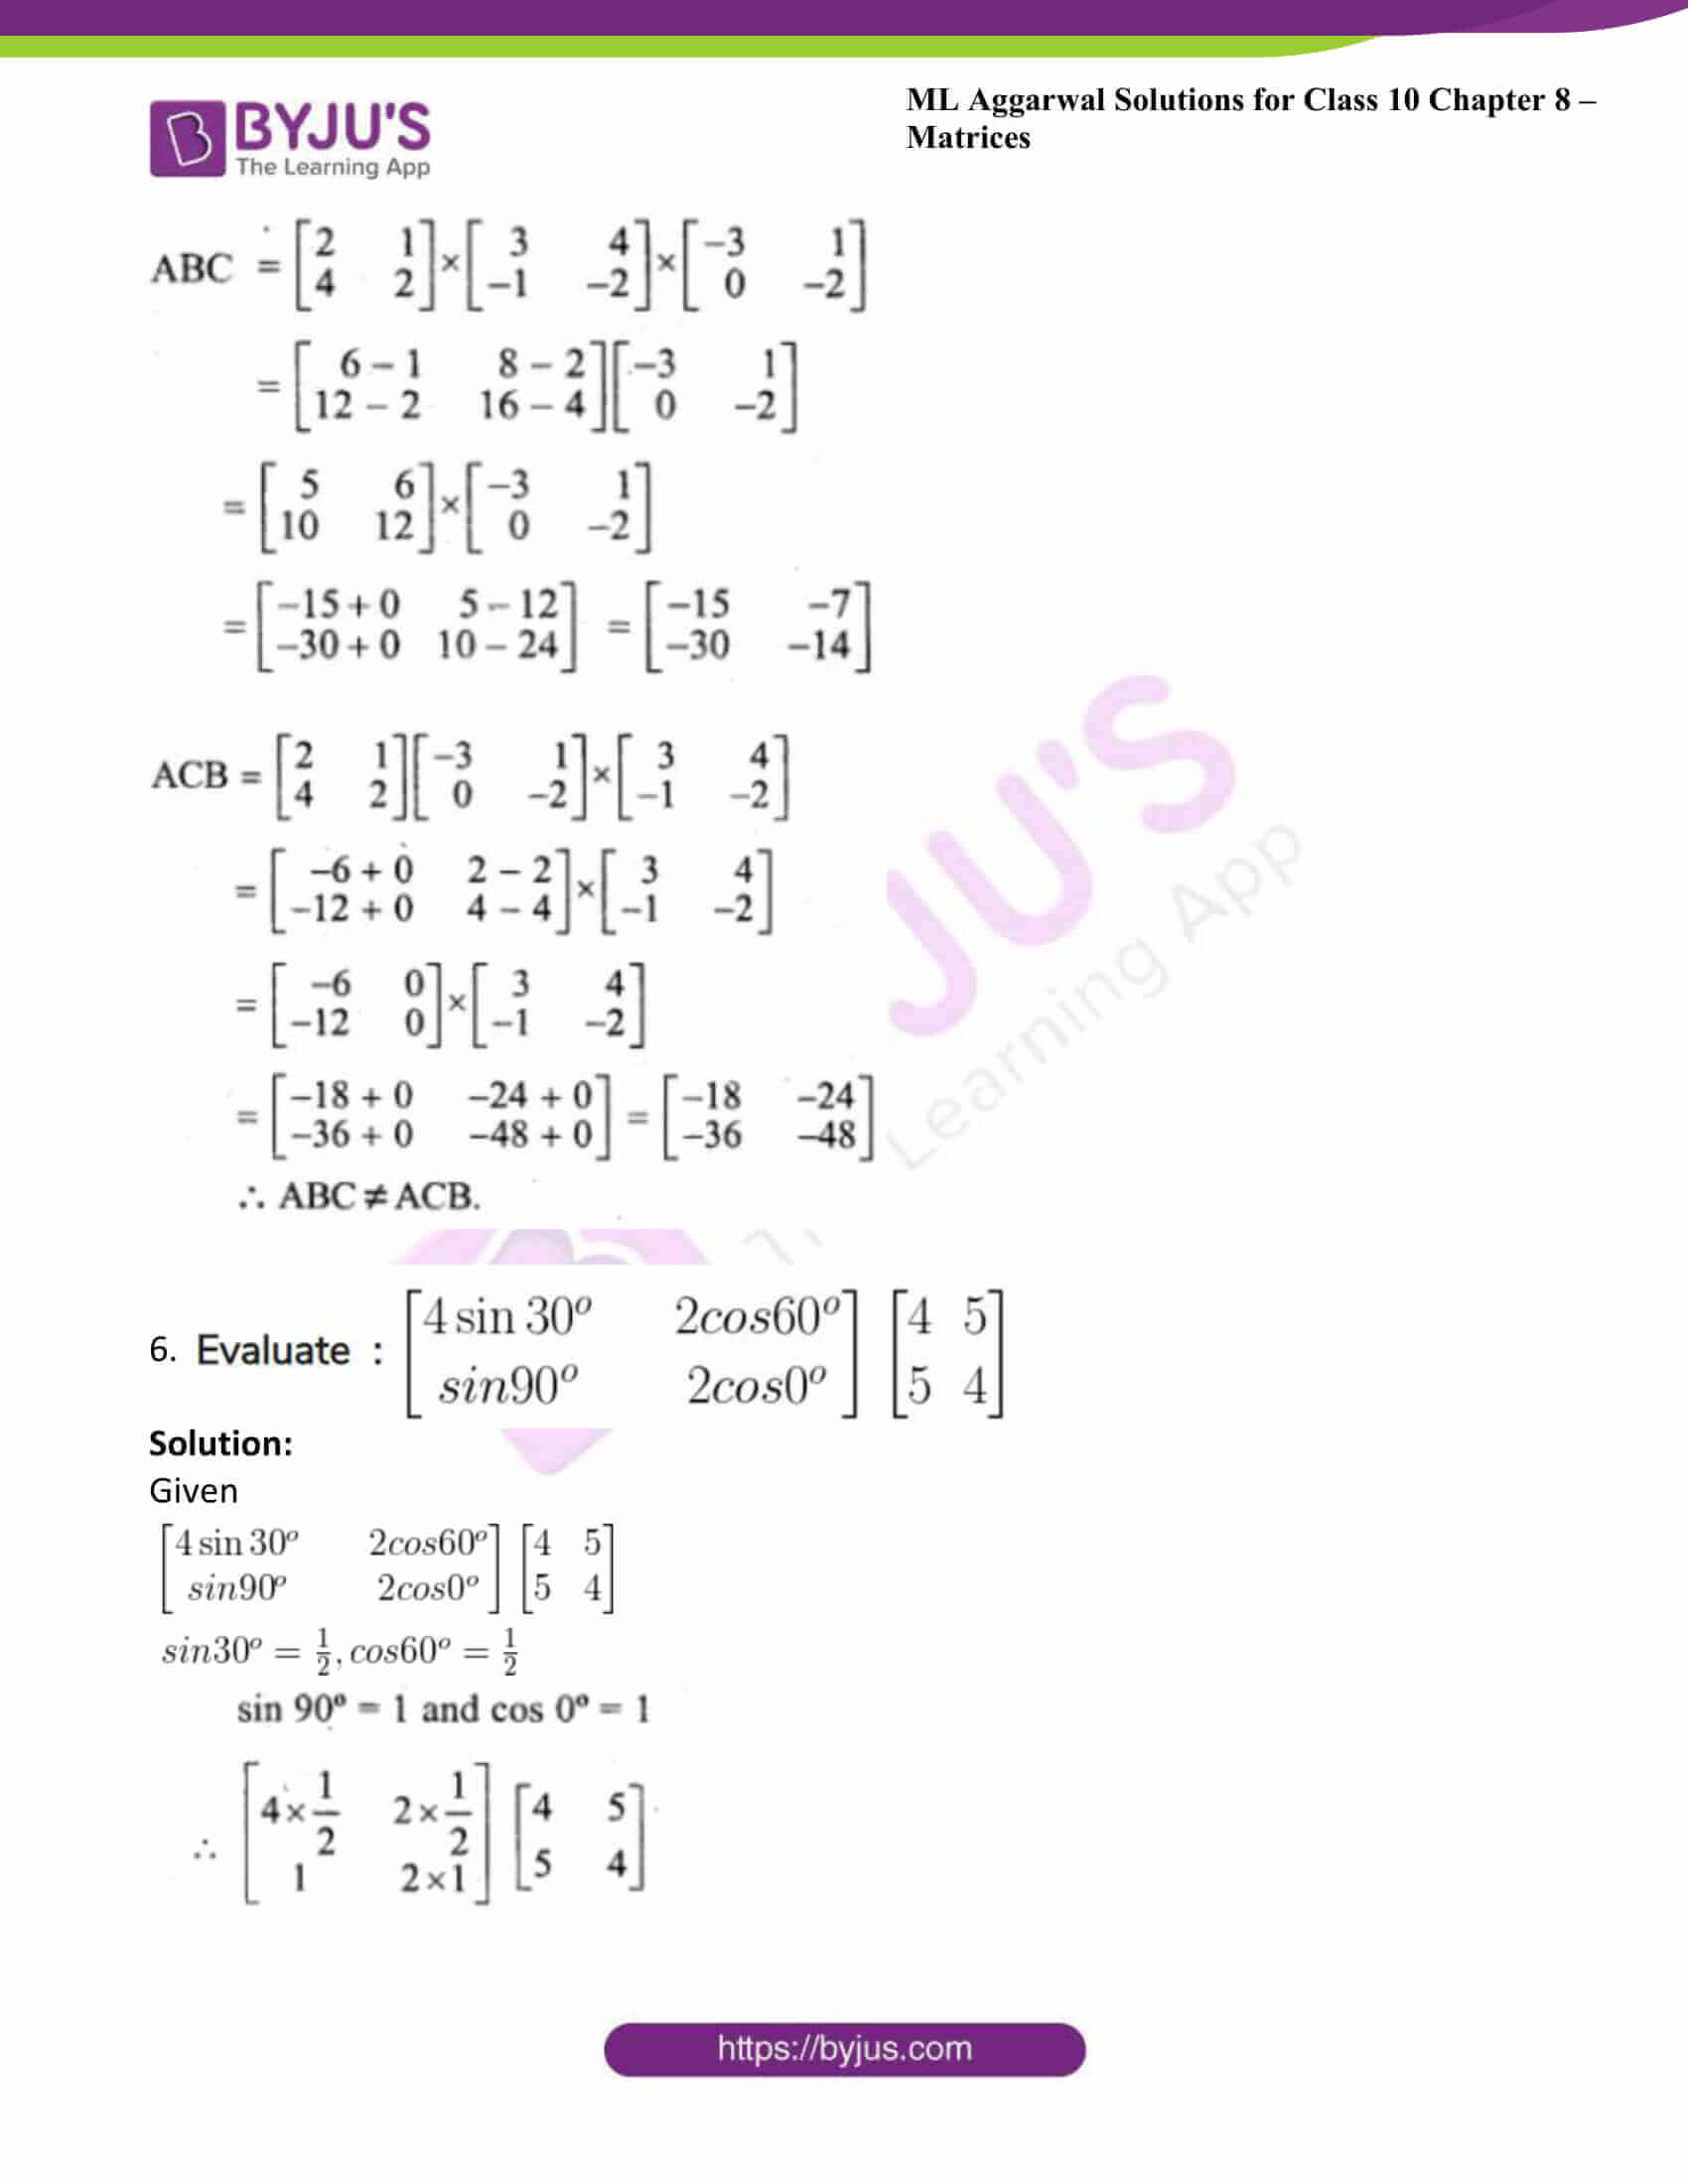 ml aggarwal solutions class 10 maths chapter 8 21